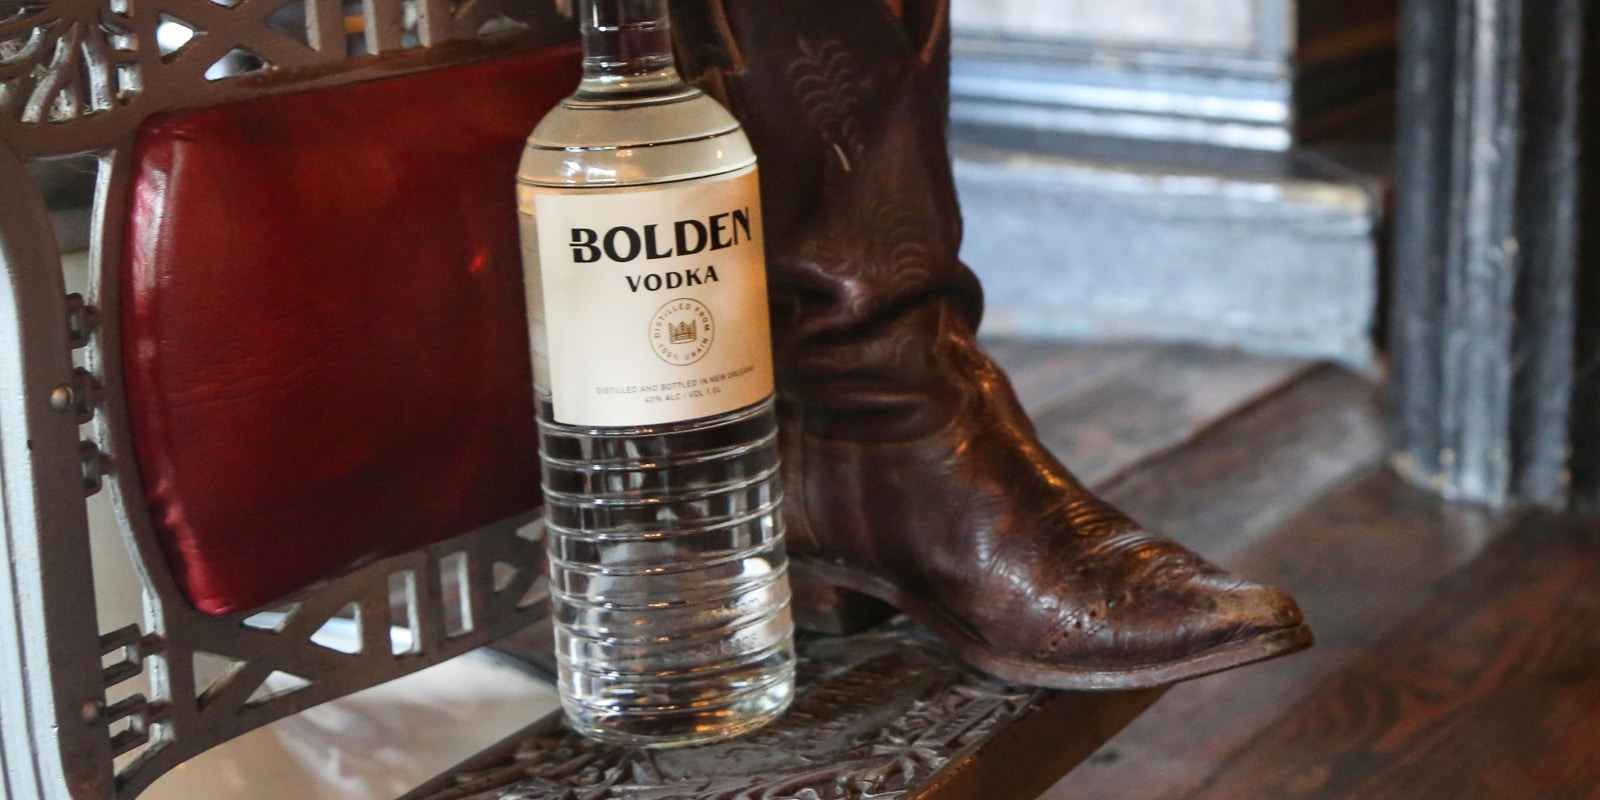 Why Bolden Vodka